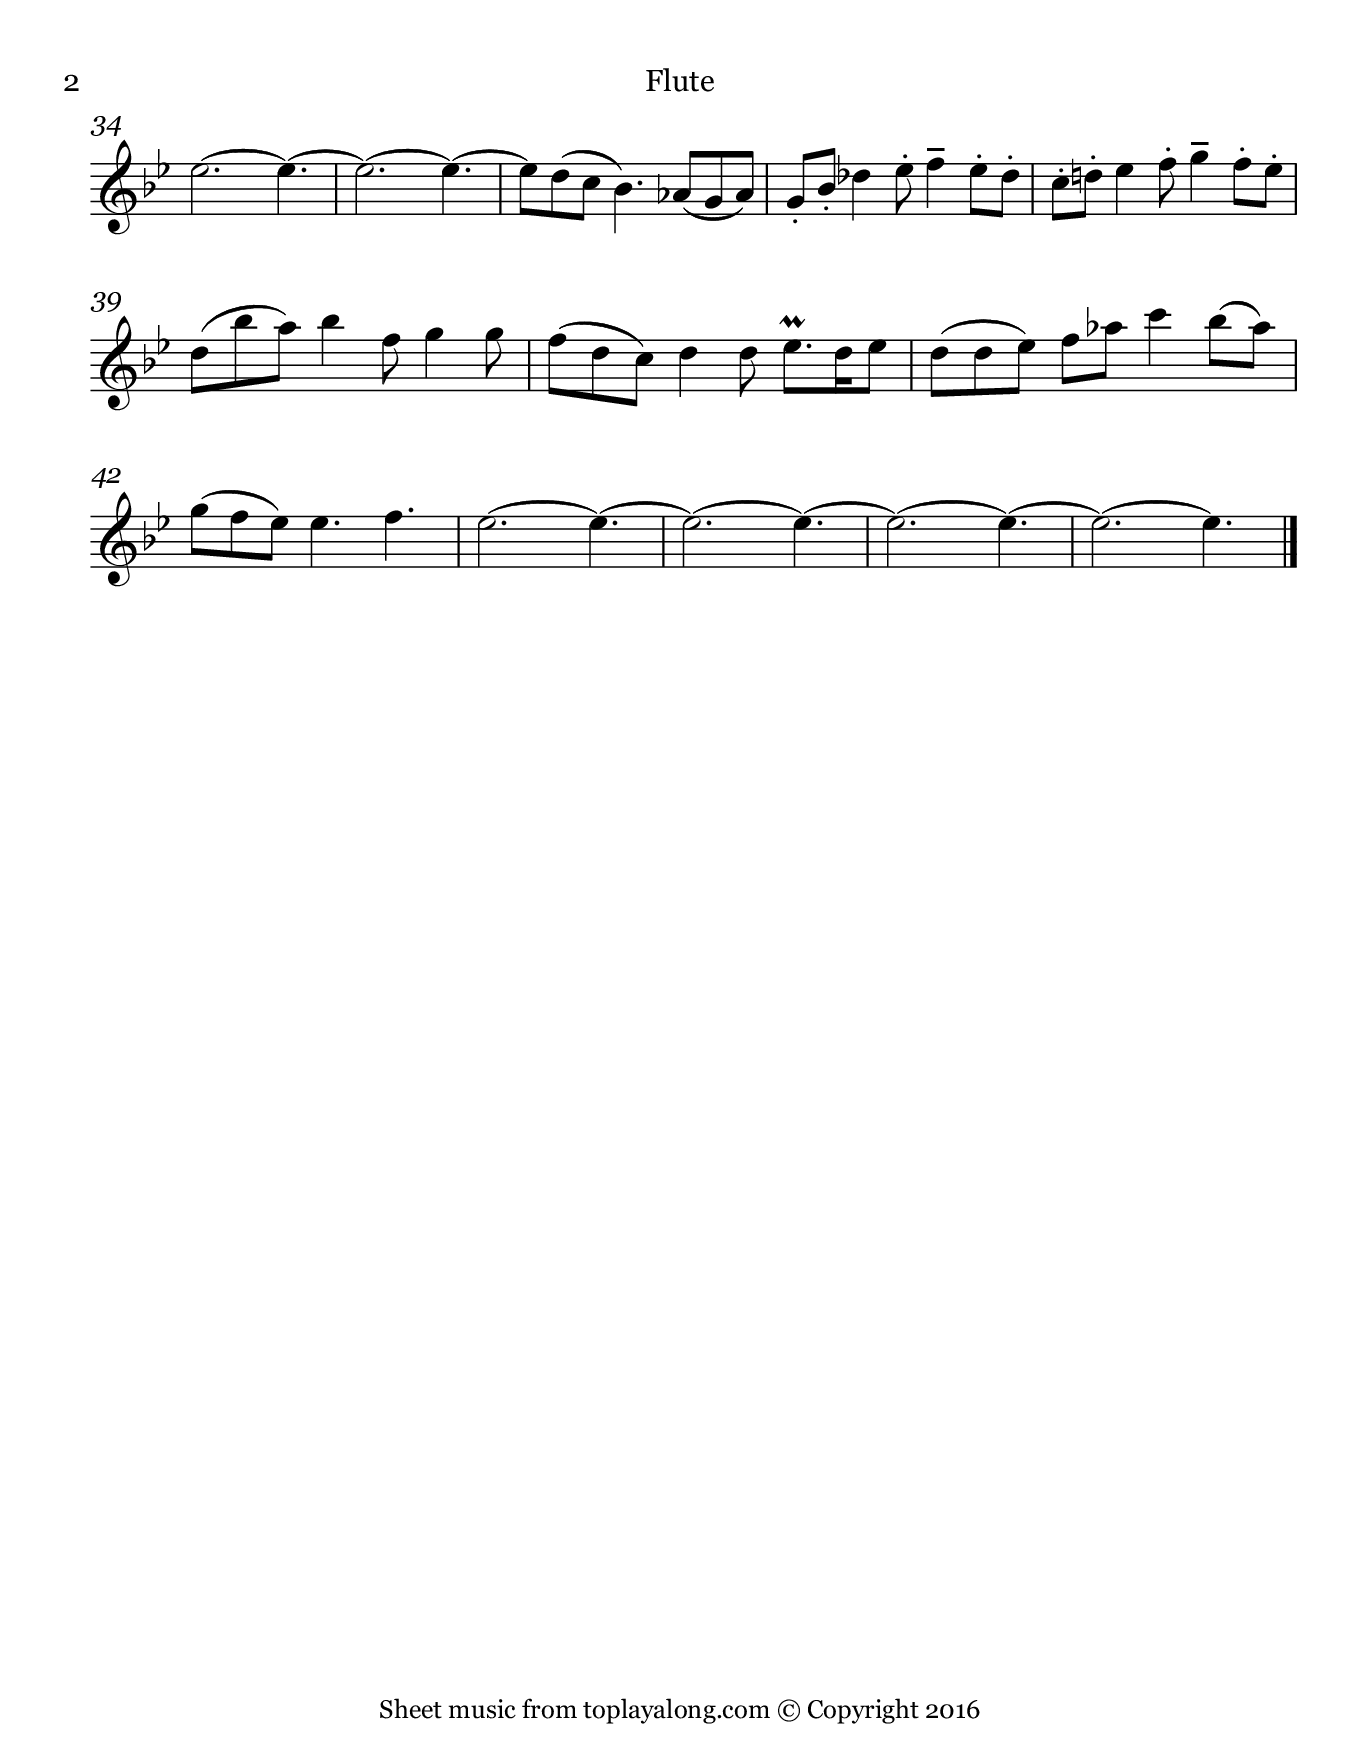 Sonata in G minor BWV 1020 (II. Adagio) by J. S. Bach. Sheet music for Flute, page 2.